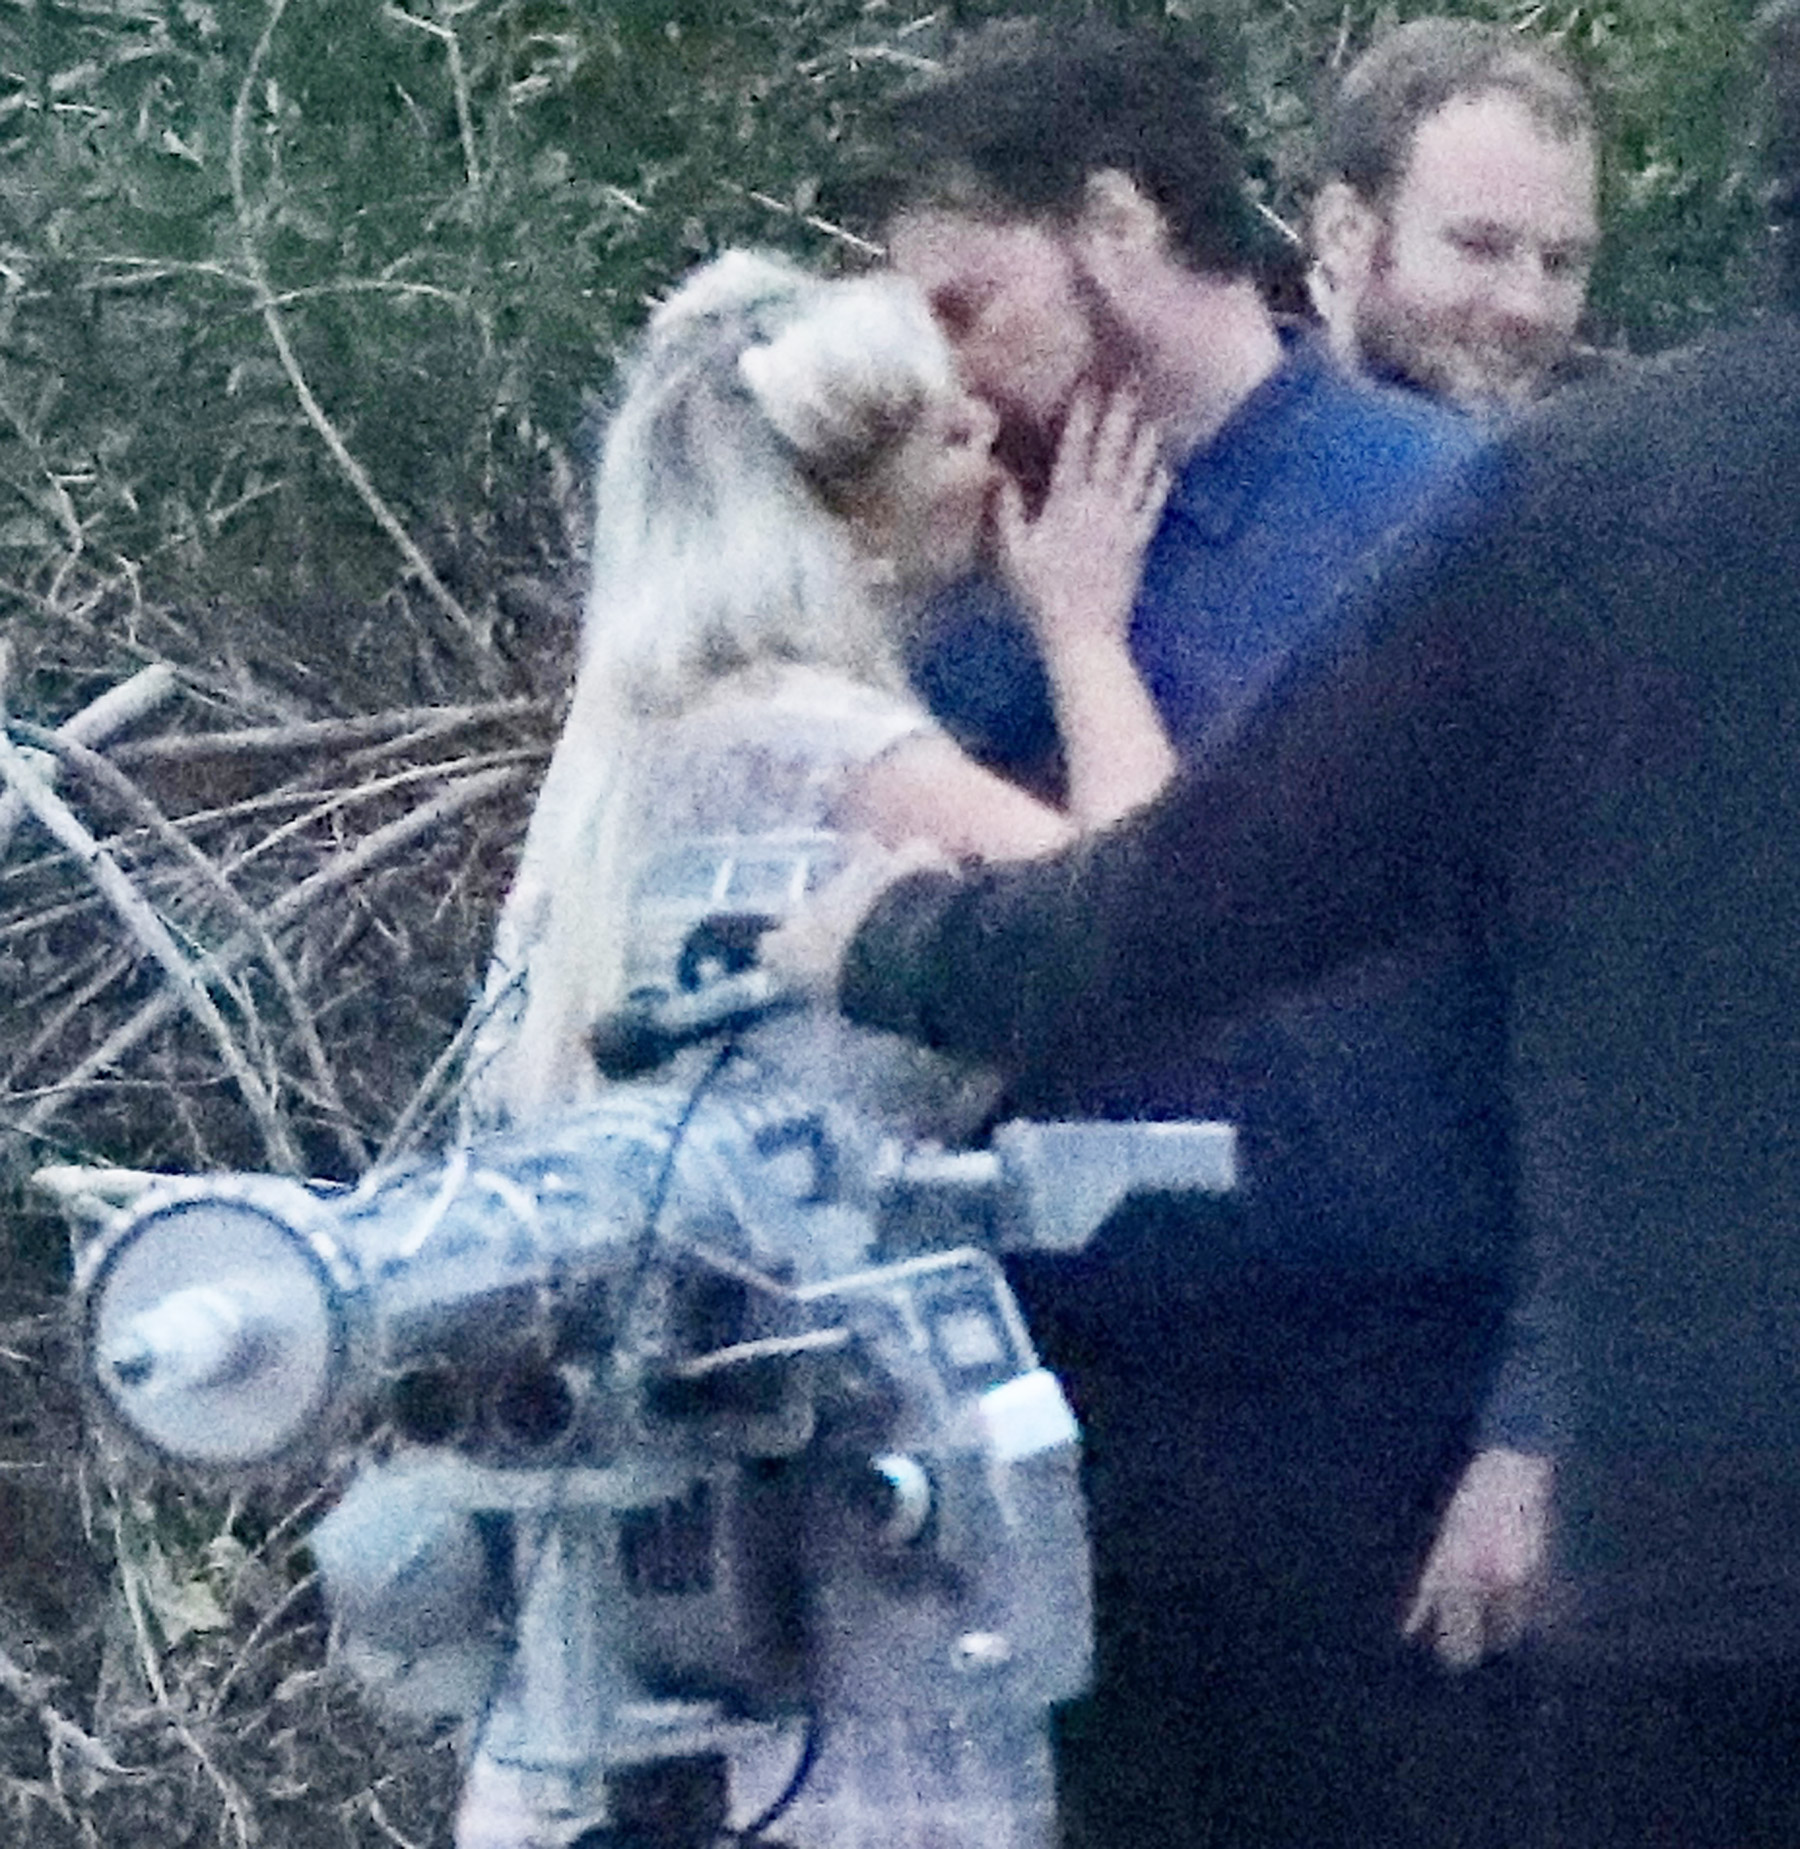 EXCLUSIVE: Tori Spelling and Dean McDermott kiss on a movie set just days after a 911 call amid fears about Tori's health.